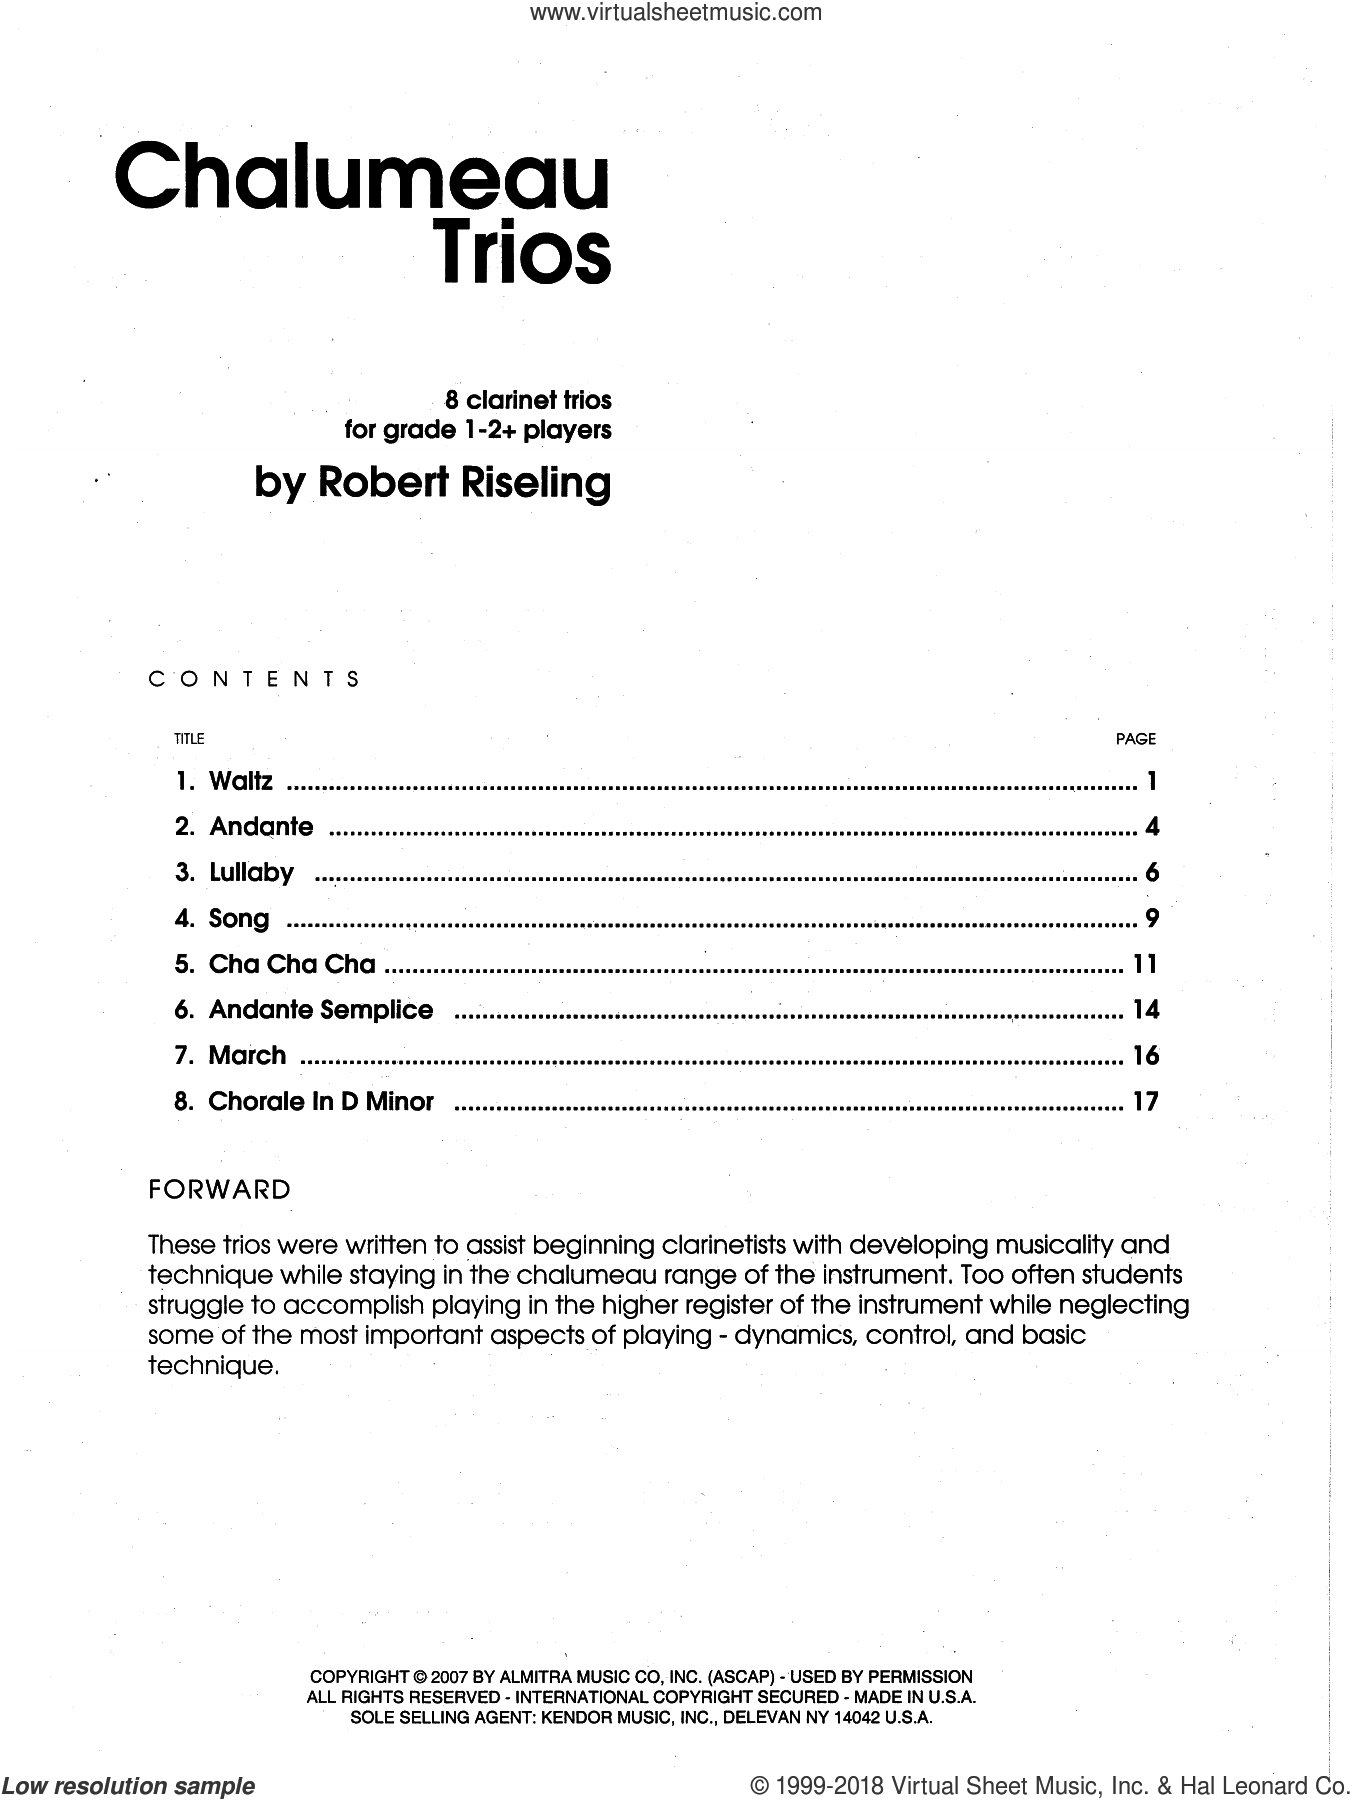 Chalumeau Trios (COMPLETE) sheet music for clarinet quartet by Riseling, classical score, intermediate